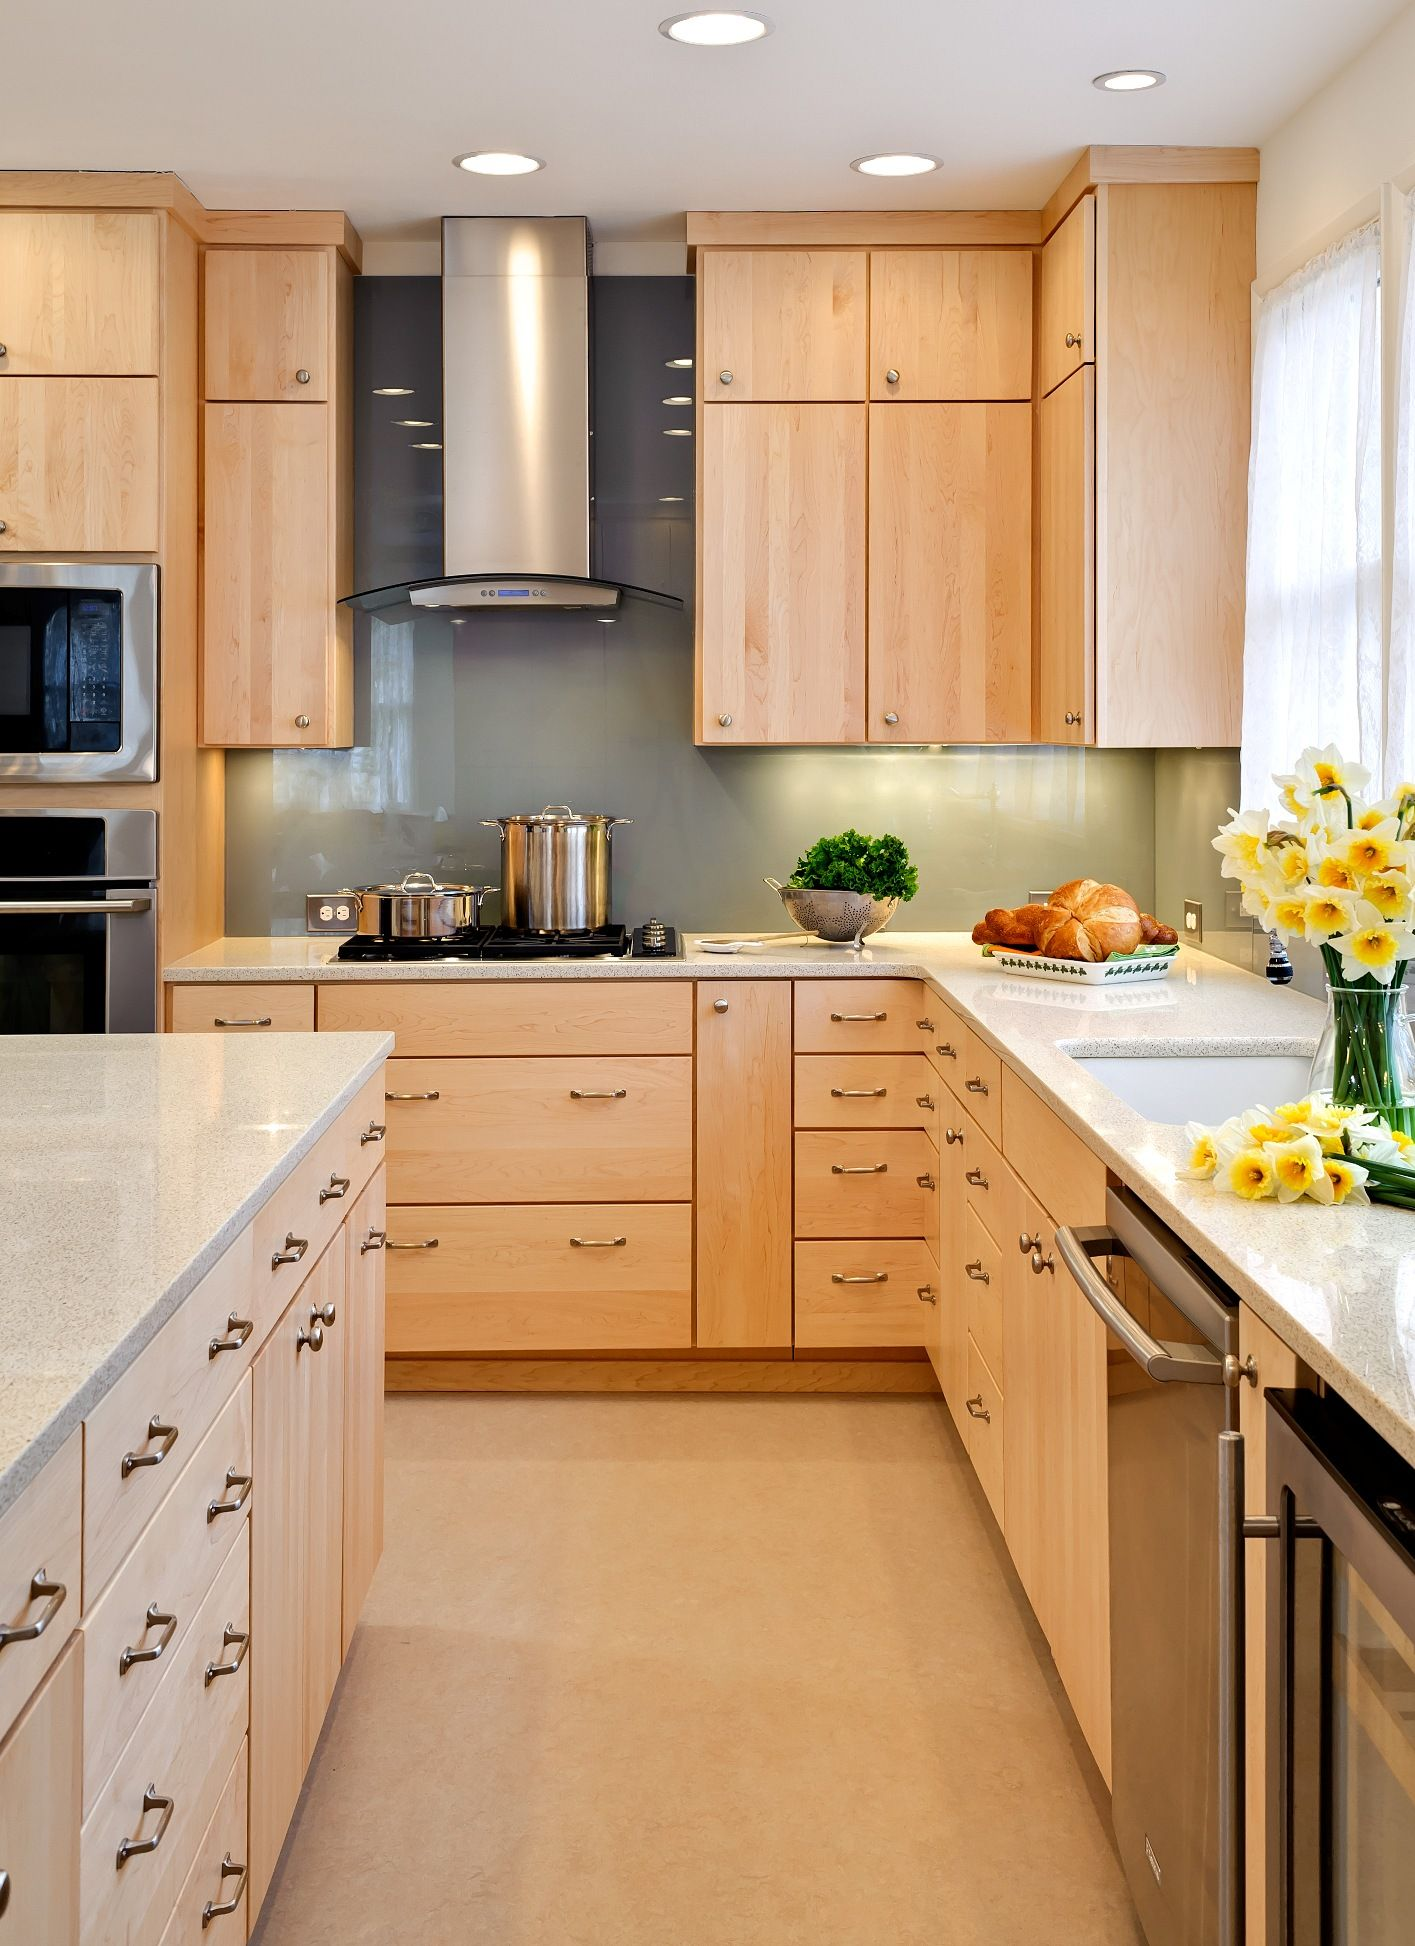 Selecting Wood Species For Cabinets Birch Kitchen Cabinets